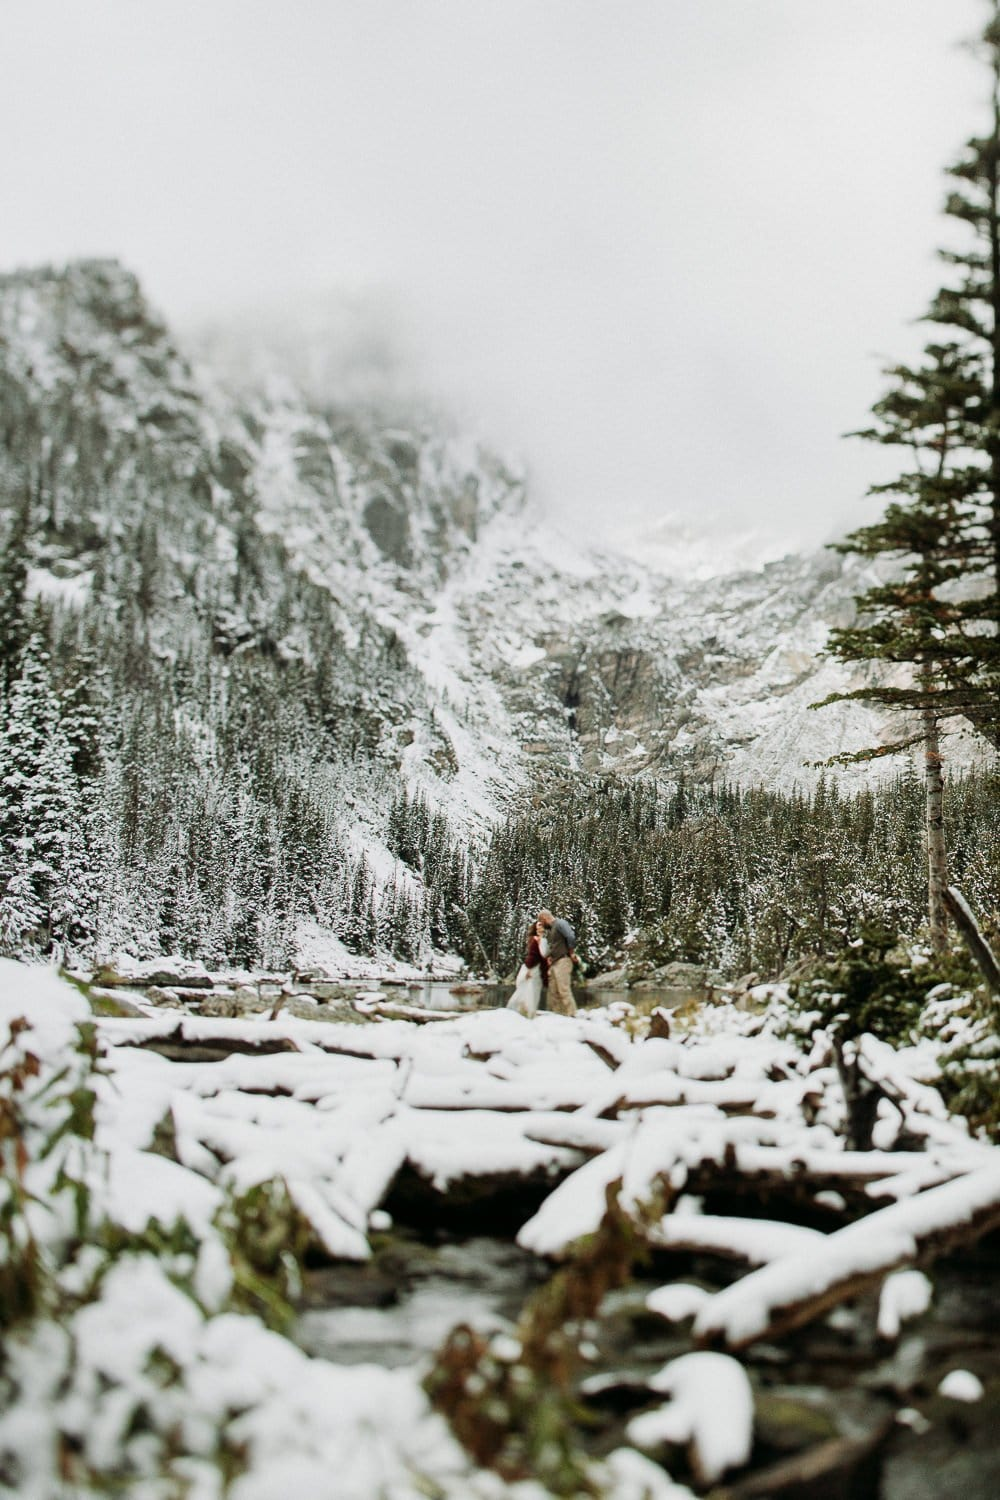 ROCKY MOUNTAIN ELOPEMENT| JASON + CHRISTINE |DREAM LAKE ELOPEMENT| JASON + CHRISTINE |JUSTYNA E BUTLER PHOTOGRAPHY | ROCKY MOUNTAIN NATIONAL PARK ELOPEMENT | COLORADO MOUNTAIN ADVENTUROUS ELOPEMENT PHOTOGRAPHER I COLORADO WINTER ELOPEMENT PHOTOGRAPHER| JUSTYNA E BUTLER PHOTOGRAPHY | COLORADO MOUNTAIN ADVENTUROUS ELOPEMENT PHOTOGRAPHER|INTIMATE WEDDING| ADVENTURE WEDDING PHOTOGRAPHER| SELF-SOLEMNIZING COLORADO ELOPEMENT